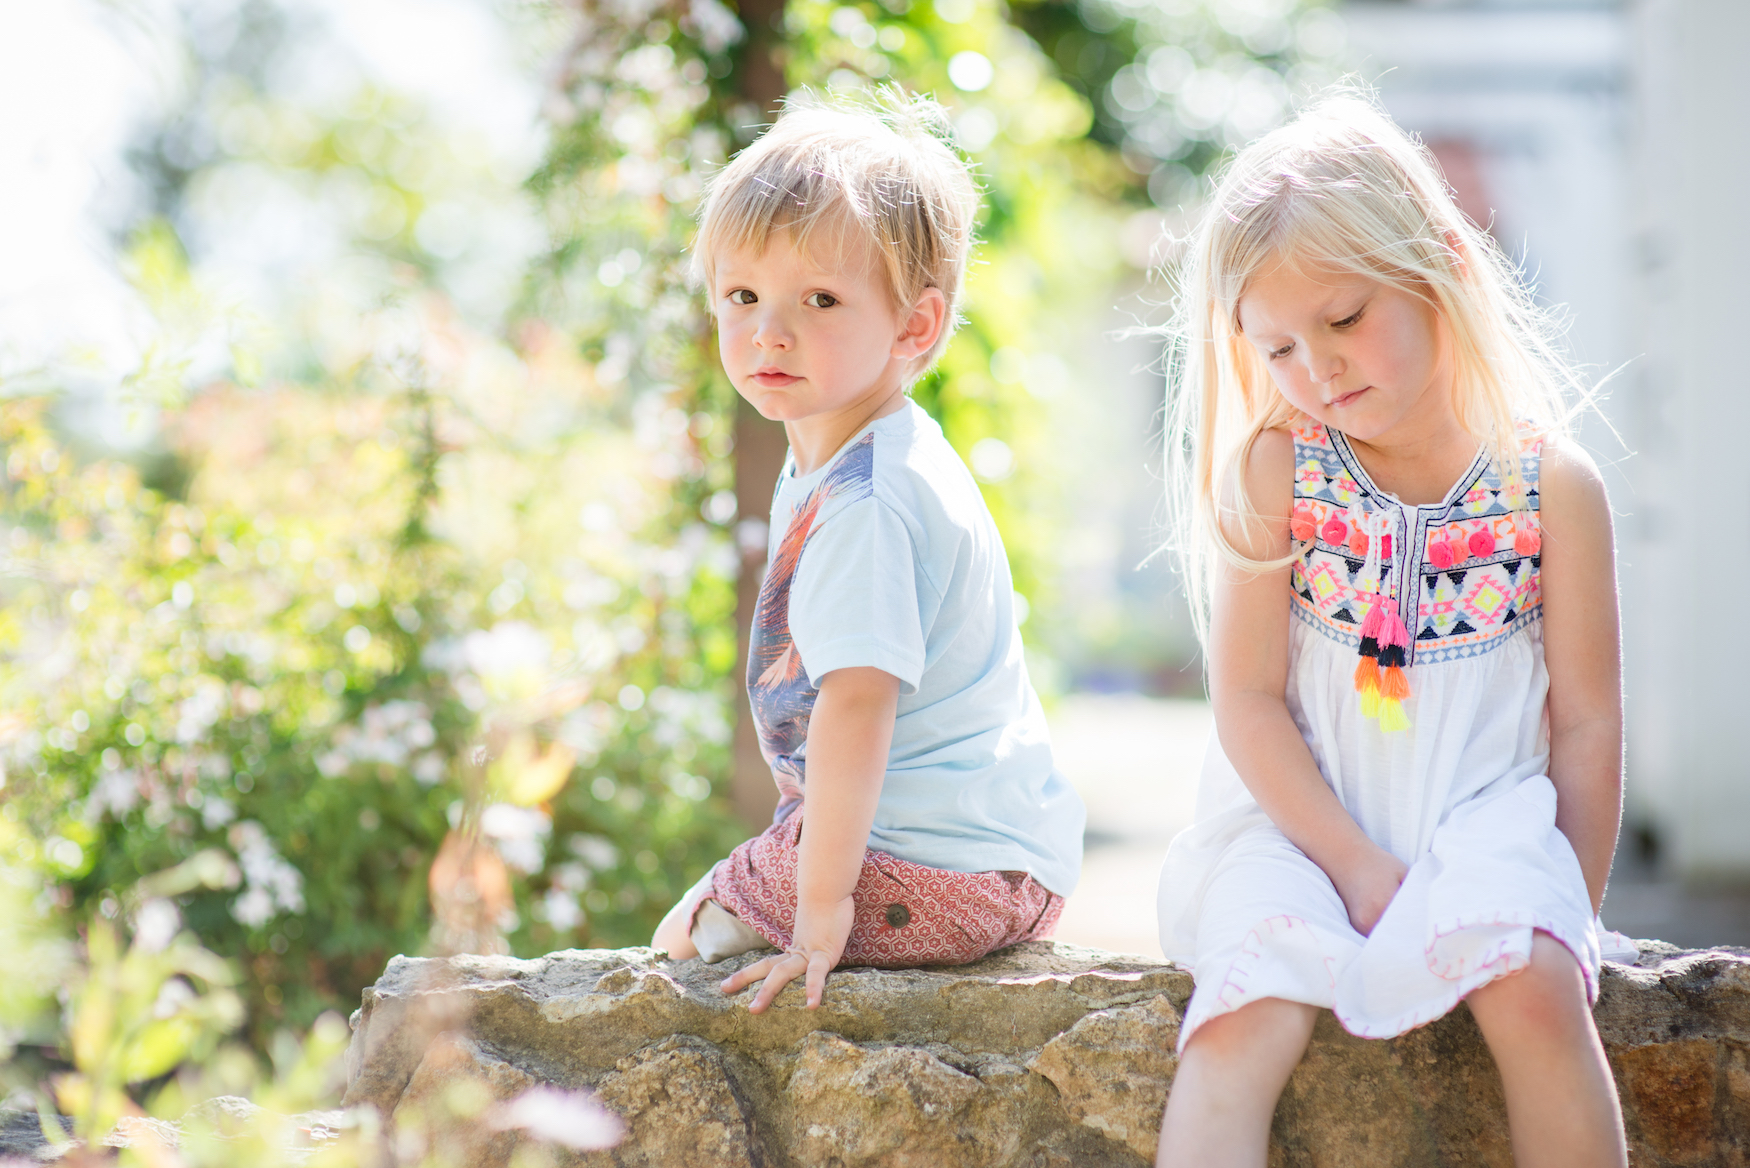 children portrait family brother sister garden home natural light